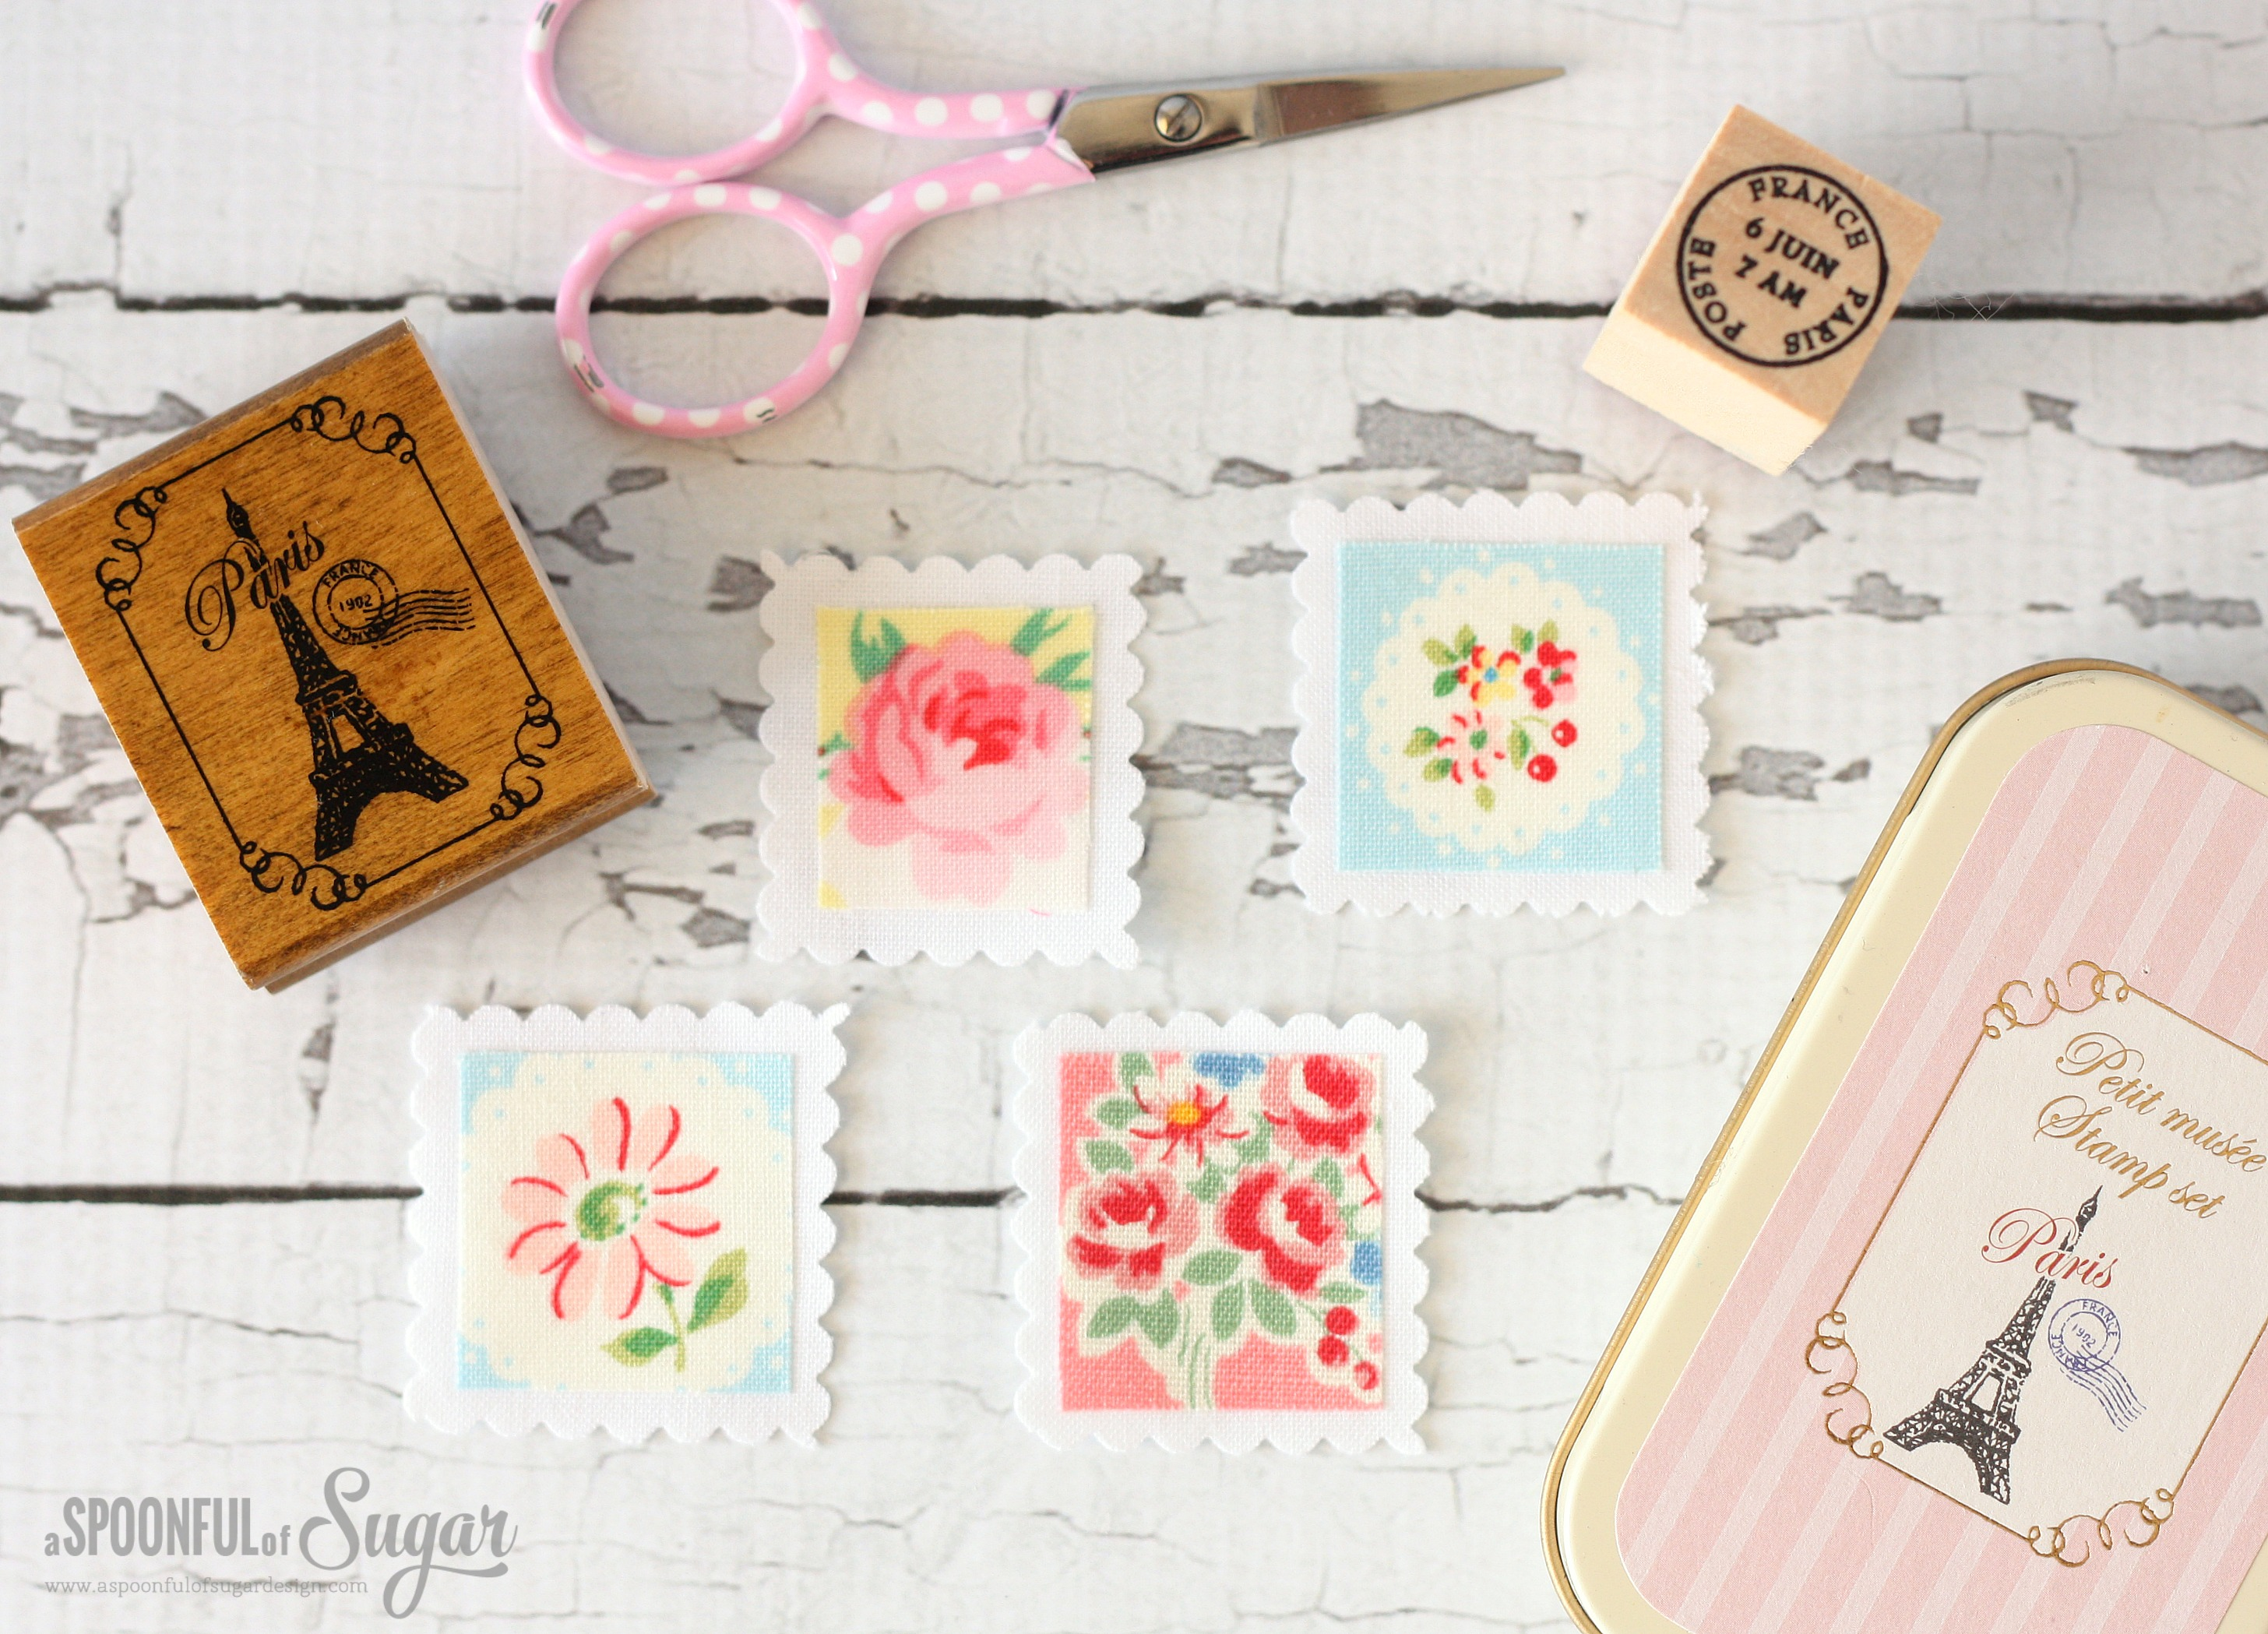 http://aspoonfulofsugardesigns.com/wp-content/uploads/2015/10/Stamps-2.jpg